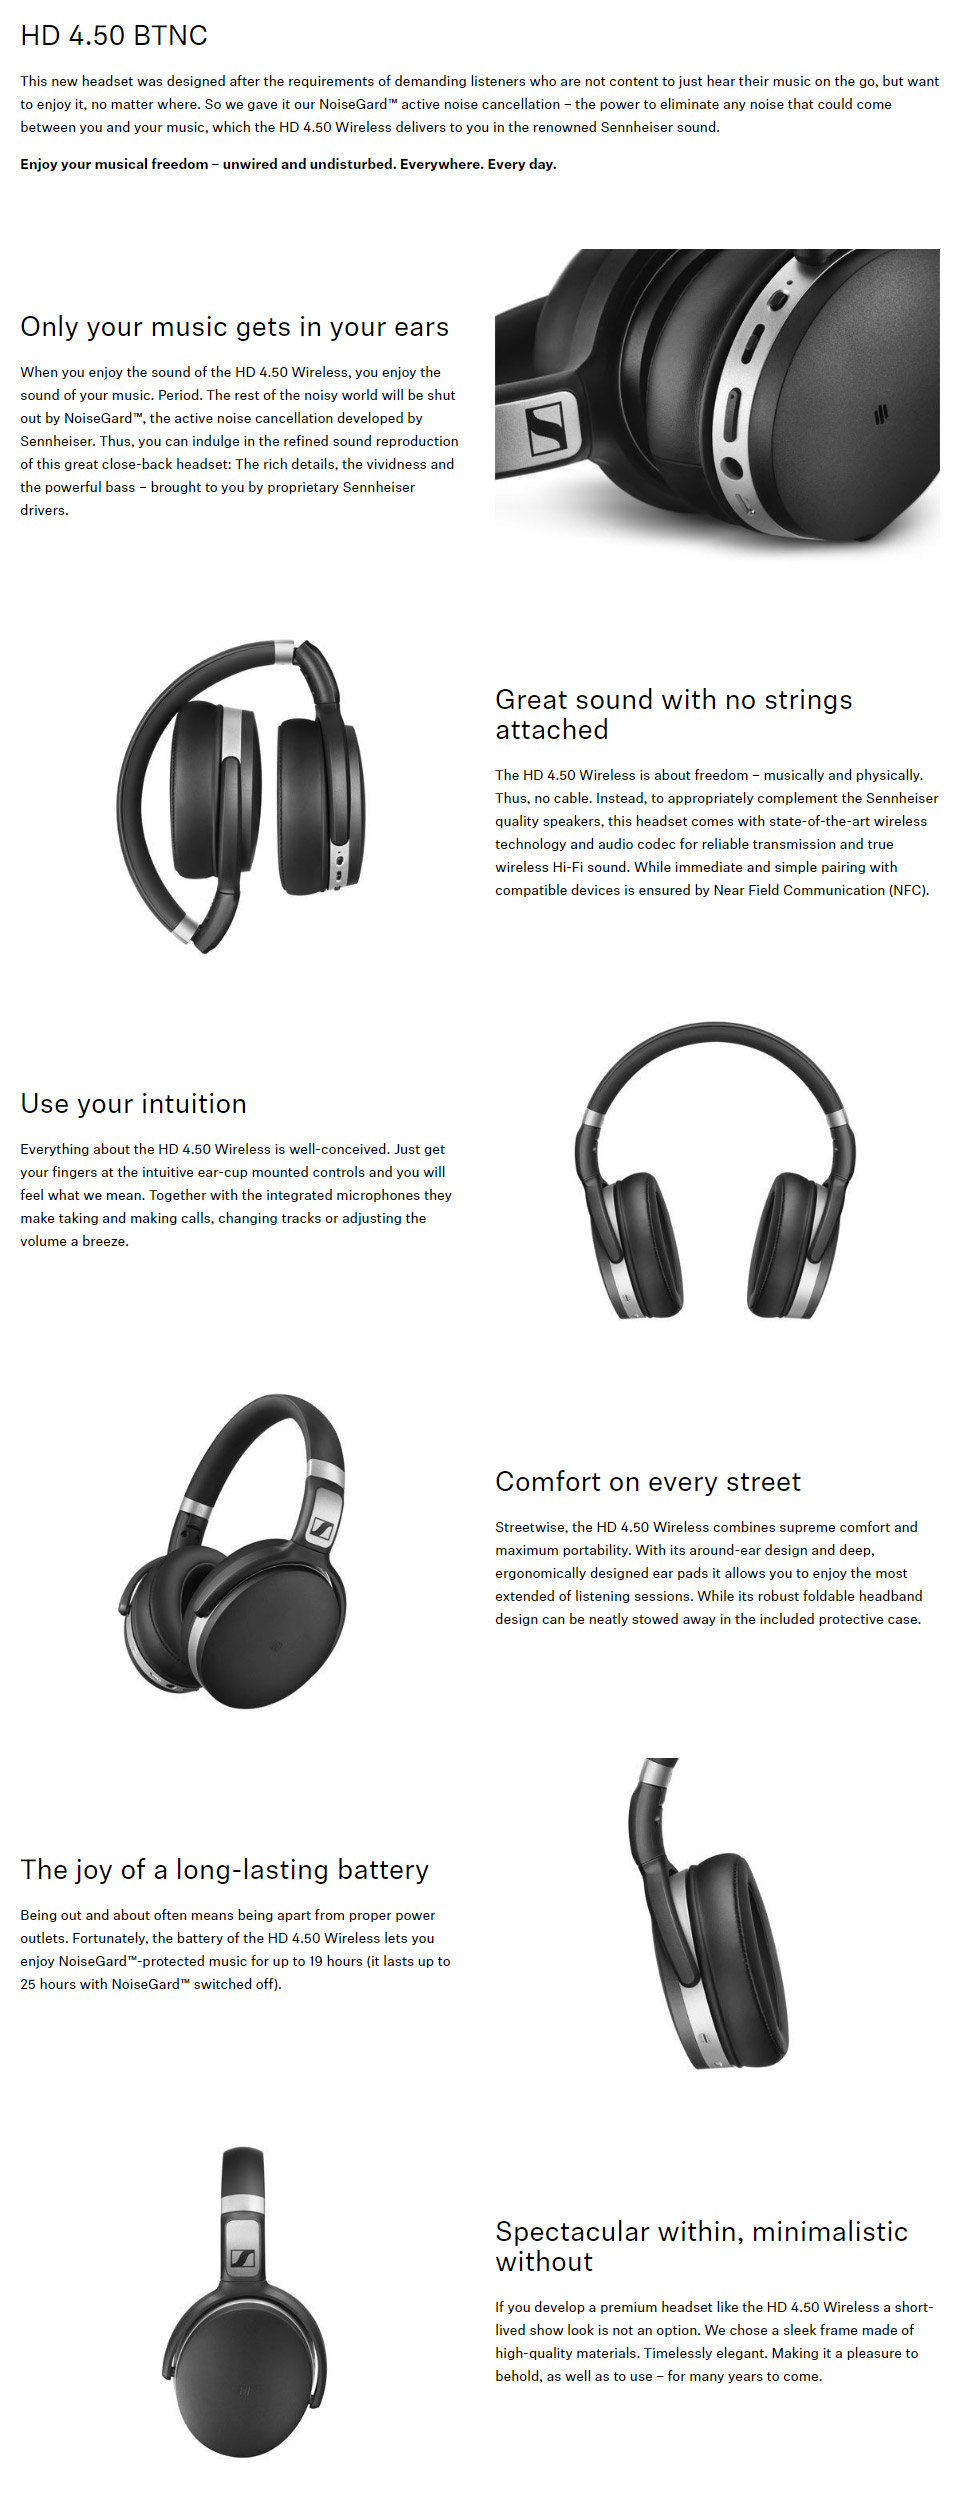 2a03152d065 But most of all, Sennheiser's NoiseGard active noise cancellation lets you  enjoy your music in peace – everywhere.